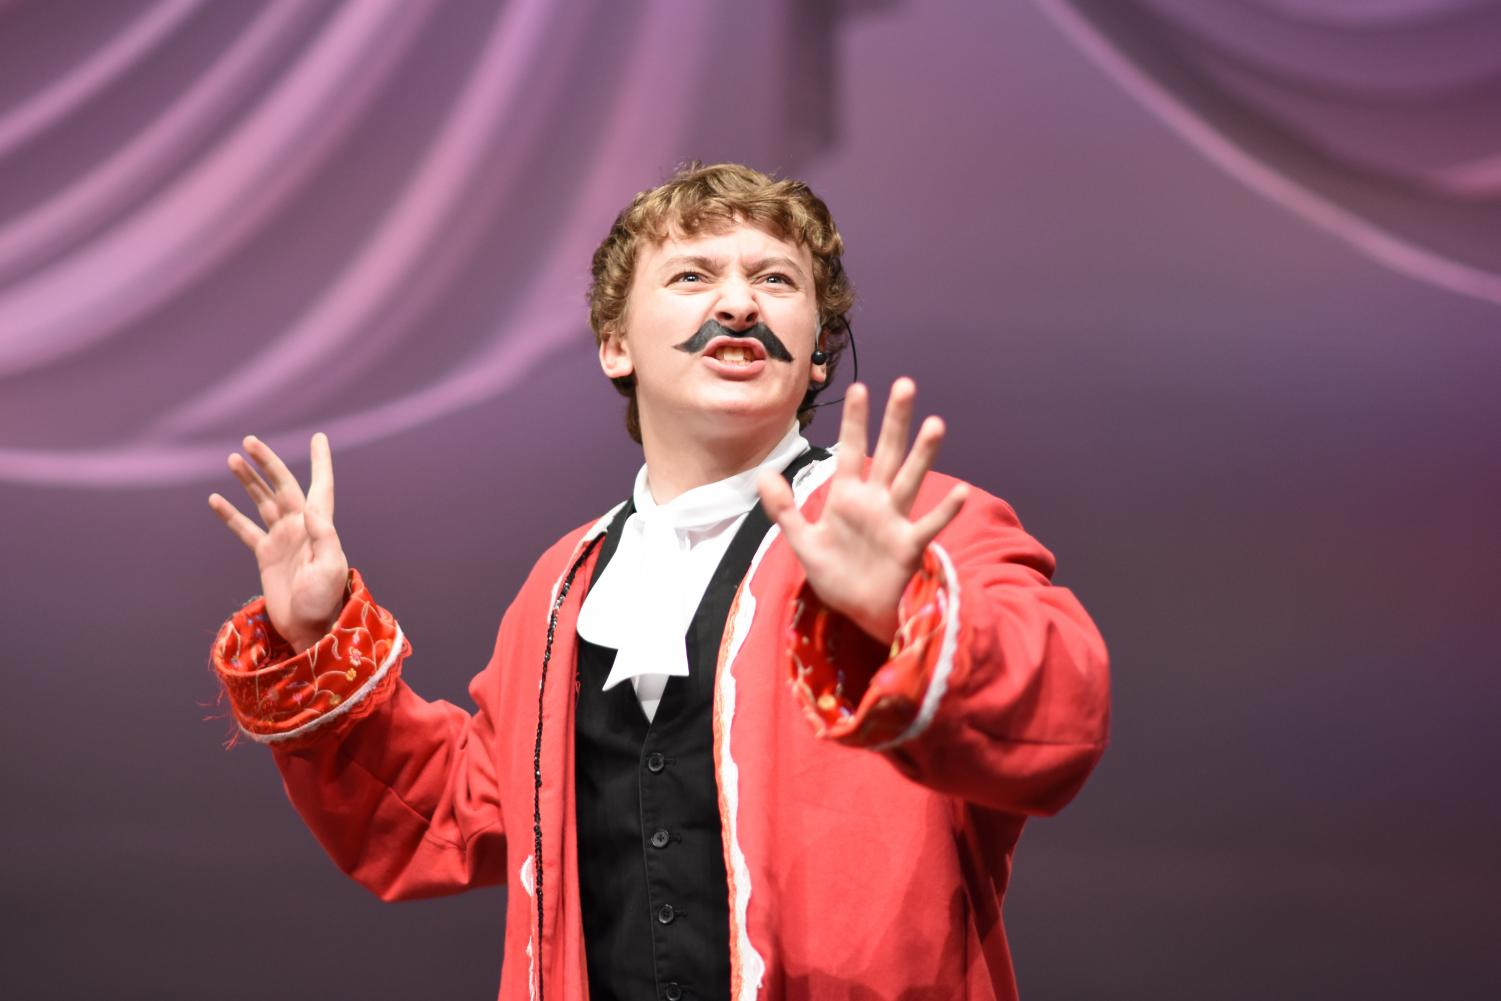 Junior Camden Brazile performs as the pirate Black Stache in Peter and the Starcatcher. Brazille is one of five students to compete in the state one-act performance of